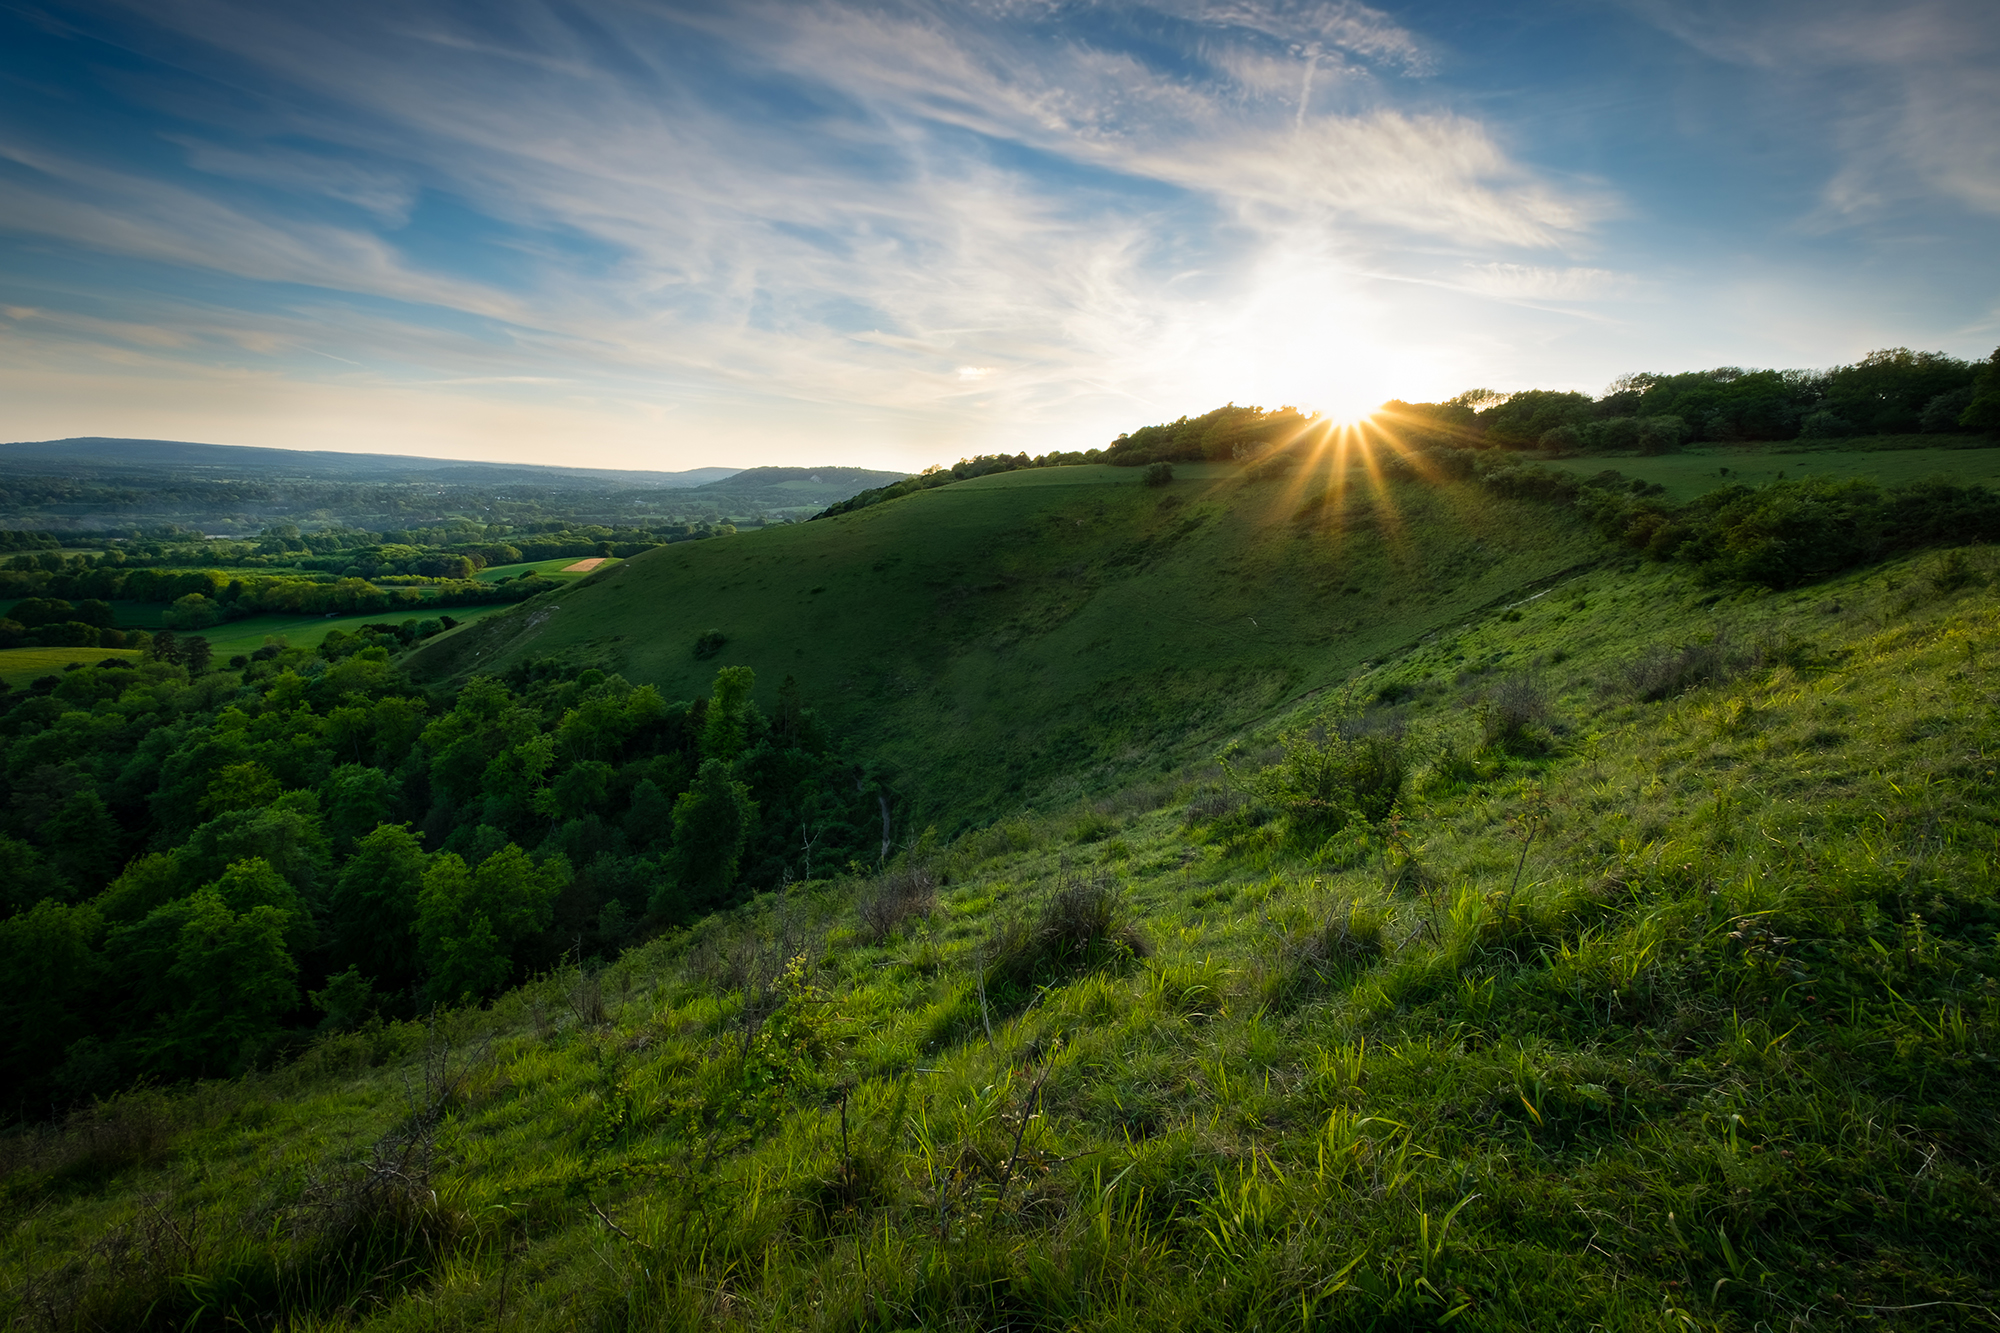 Photo of Colley Hill in Surrey at sunset taken by Trevor Sherwin